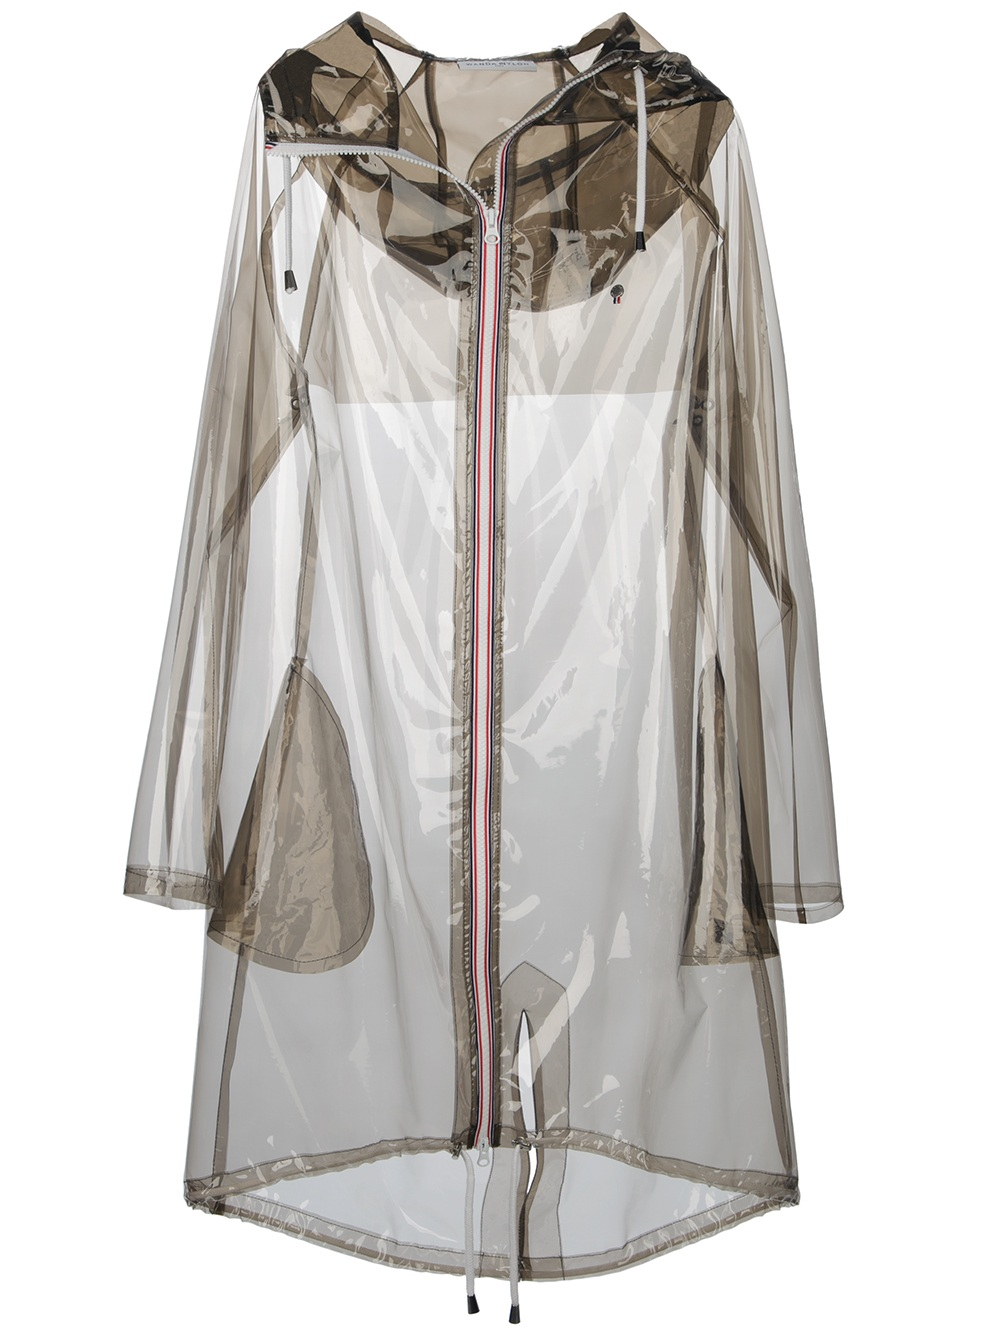 Wanda Nylon Long Hooded Raincoat Lyst